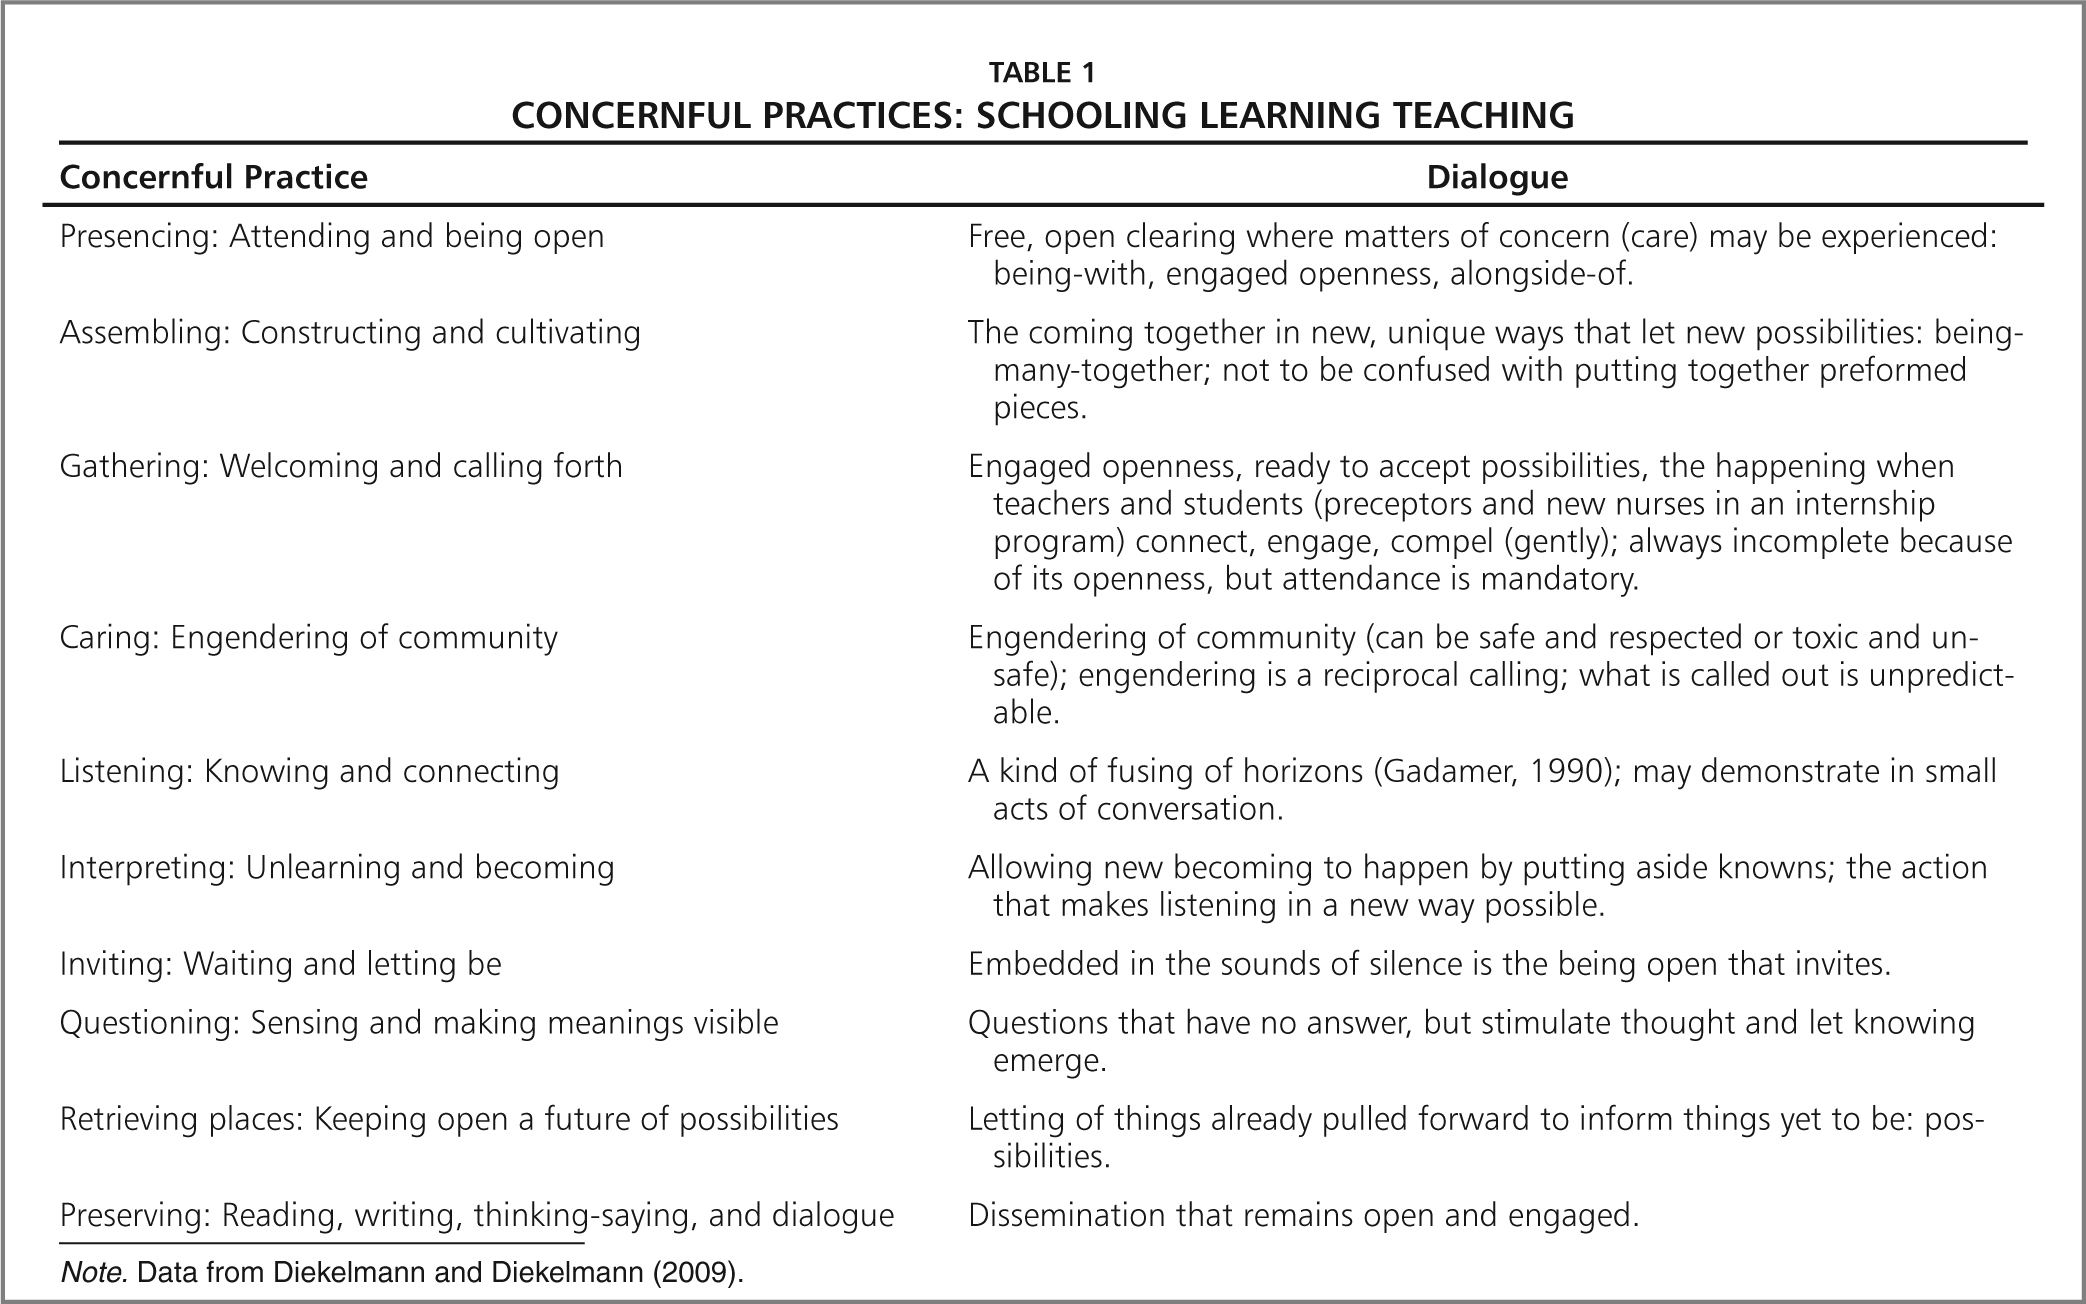 Concernful Practices: Schooling Learning Teaching